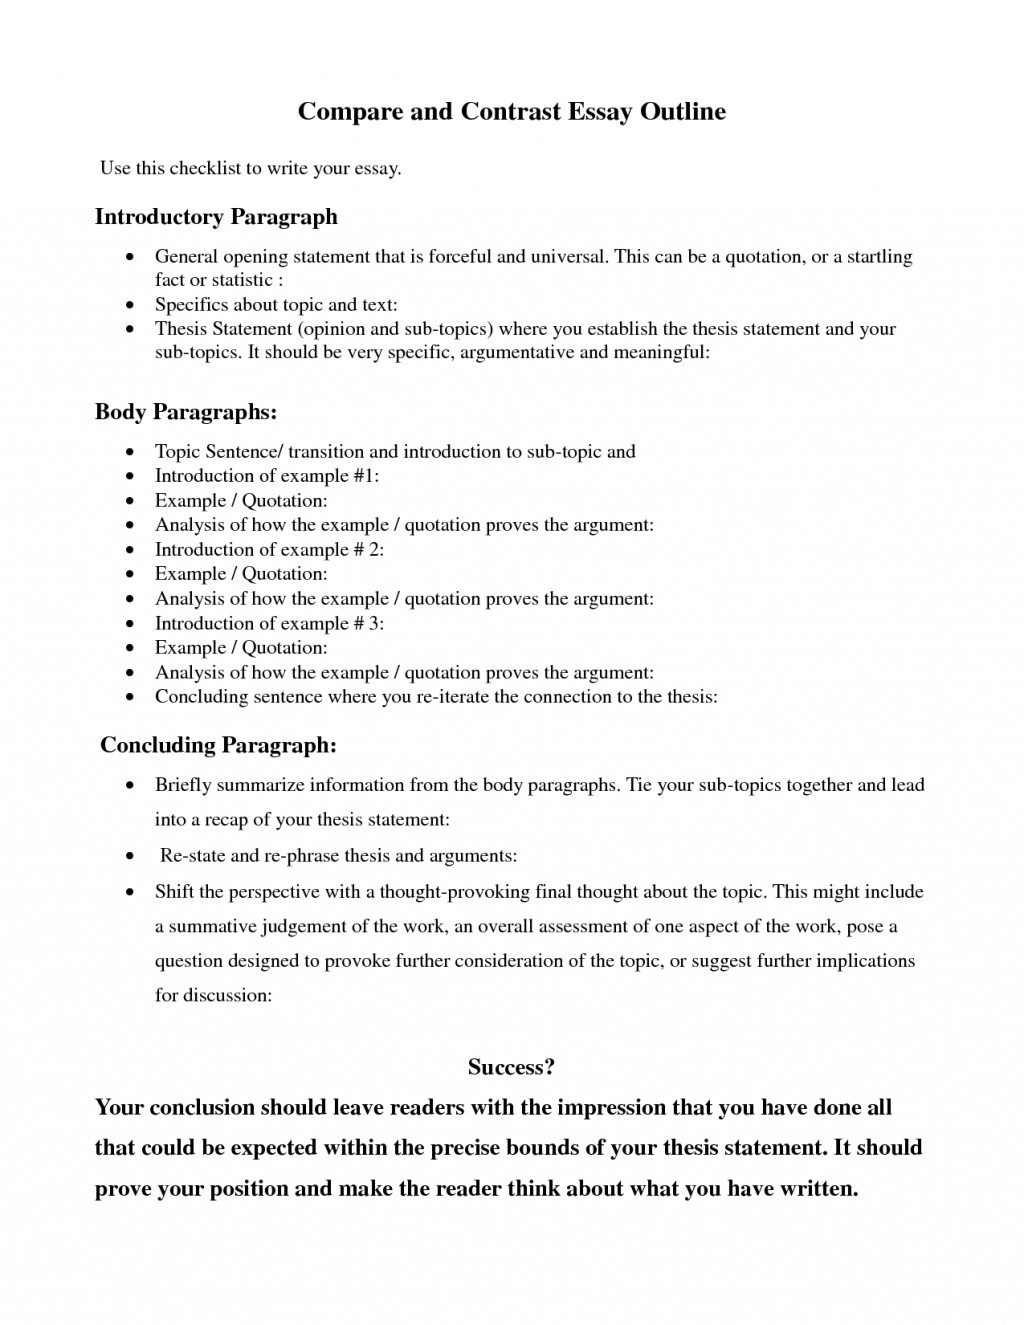 001 First Impression Essay Amazing Comparison Introductions Picture Inspirations Write Thesis Compare Contrast And 1024x1325 Awesome Opinion Making A Good Outline Large